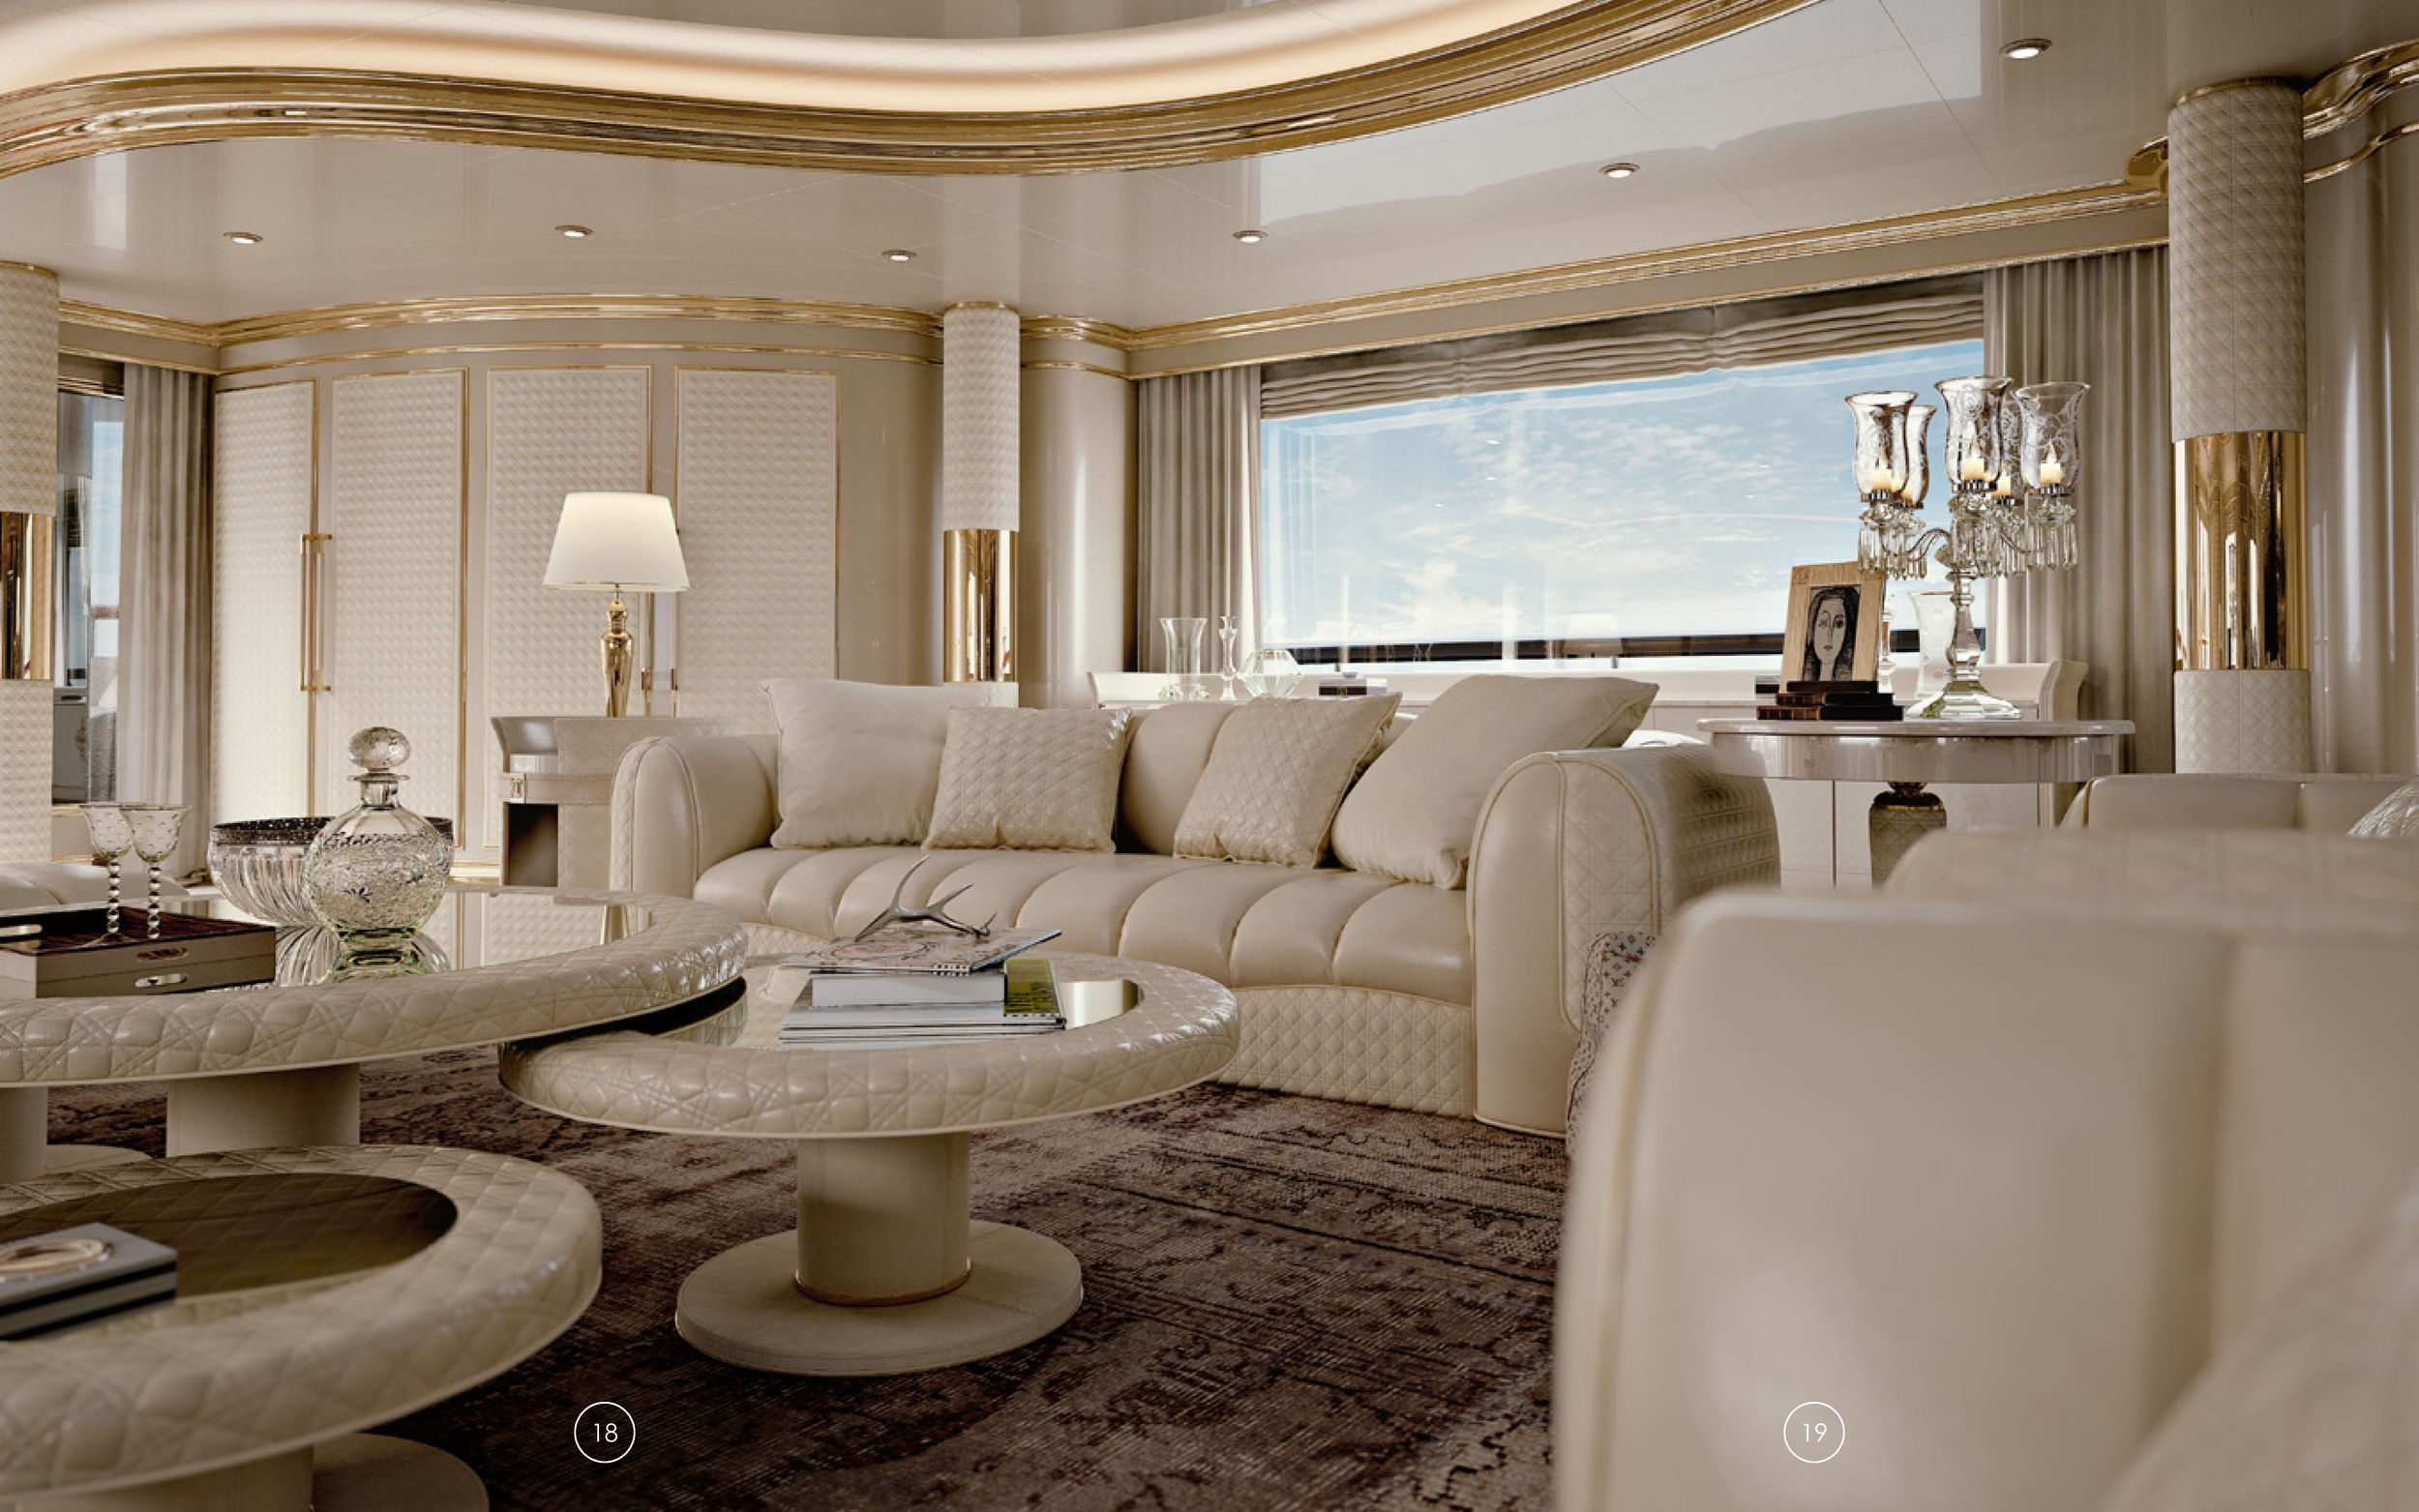 5.0 OCEAN DREAM 2014_megayacht_Страница_11.jpg